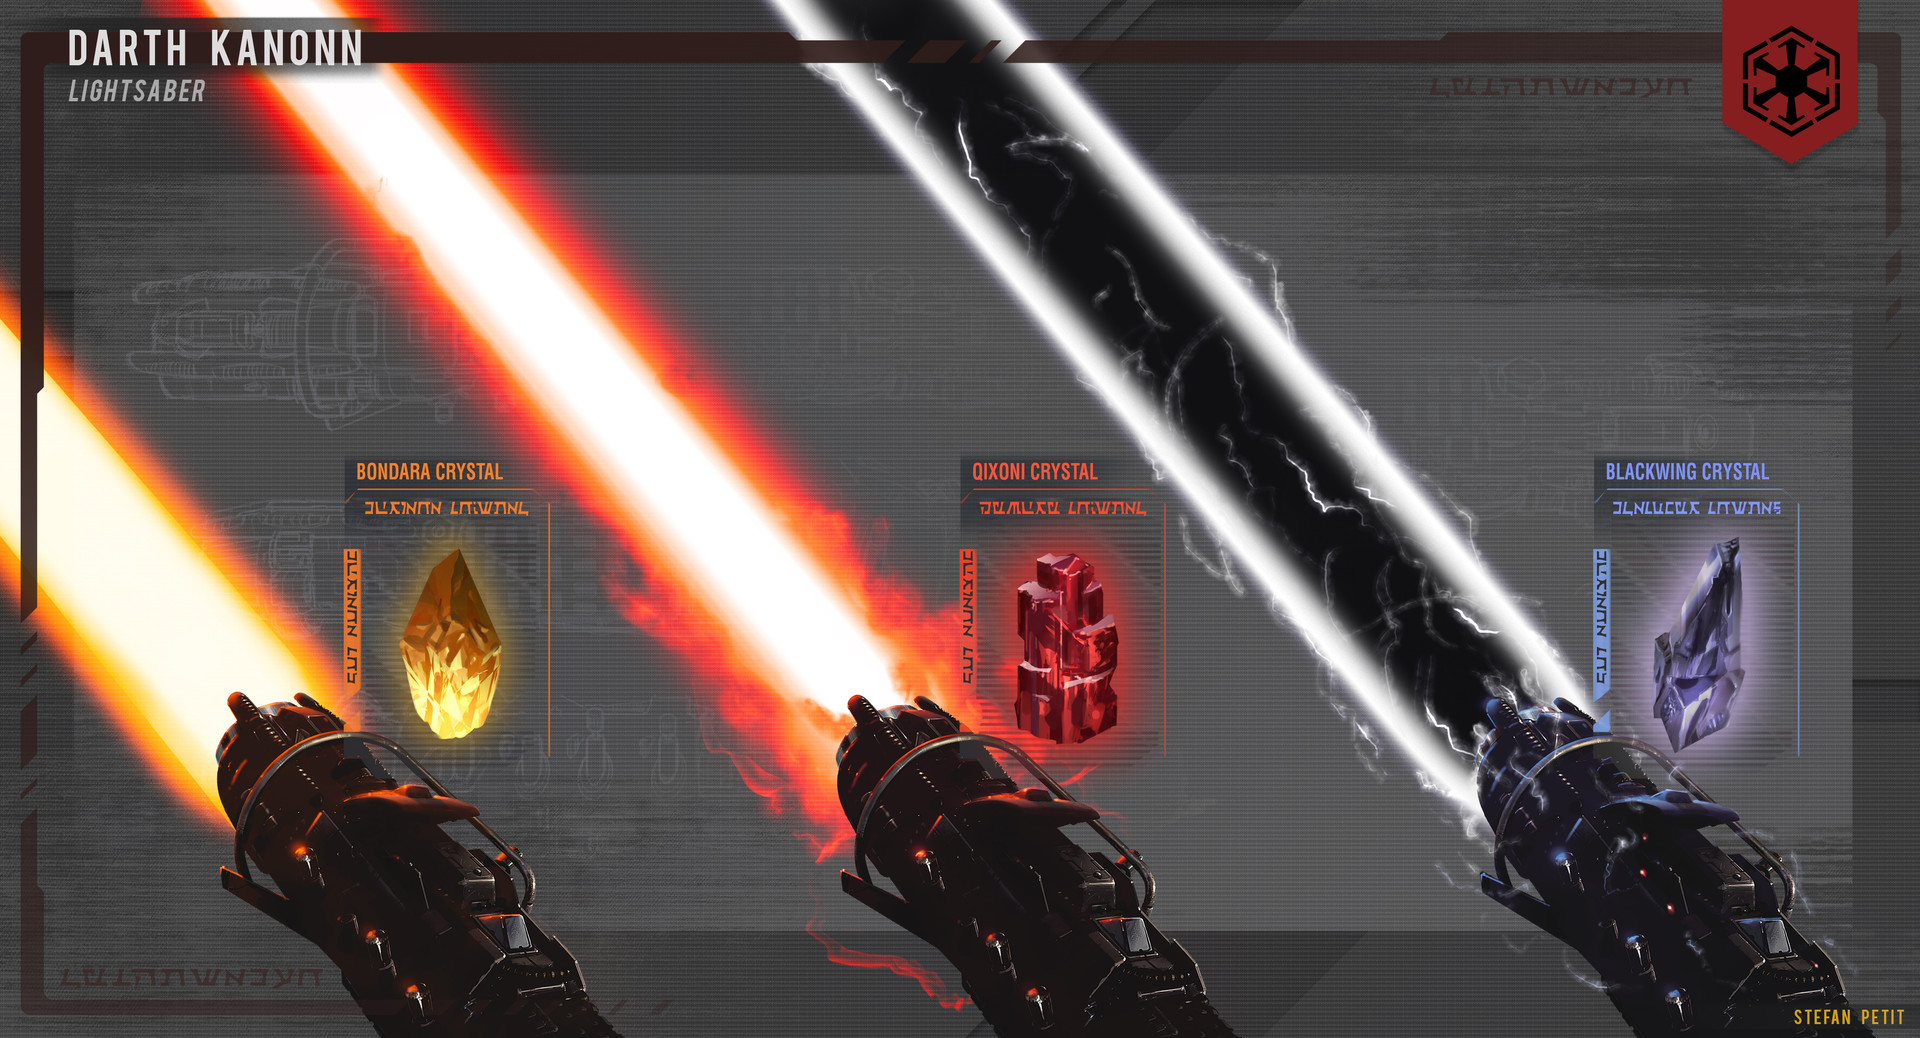 hight resolution of lightsaber part 2 crystals cross section